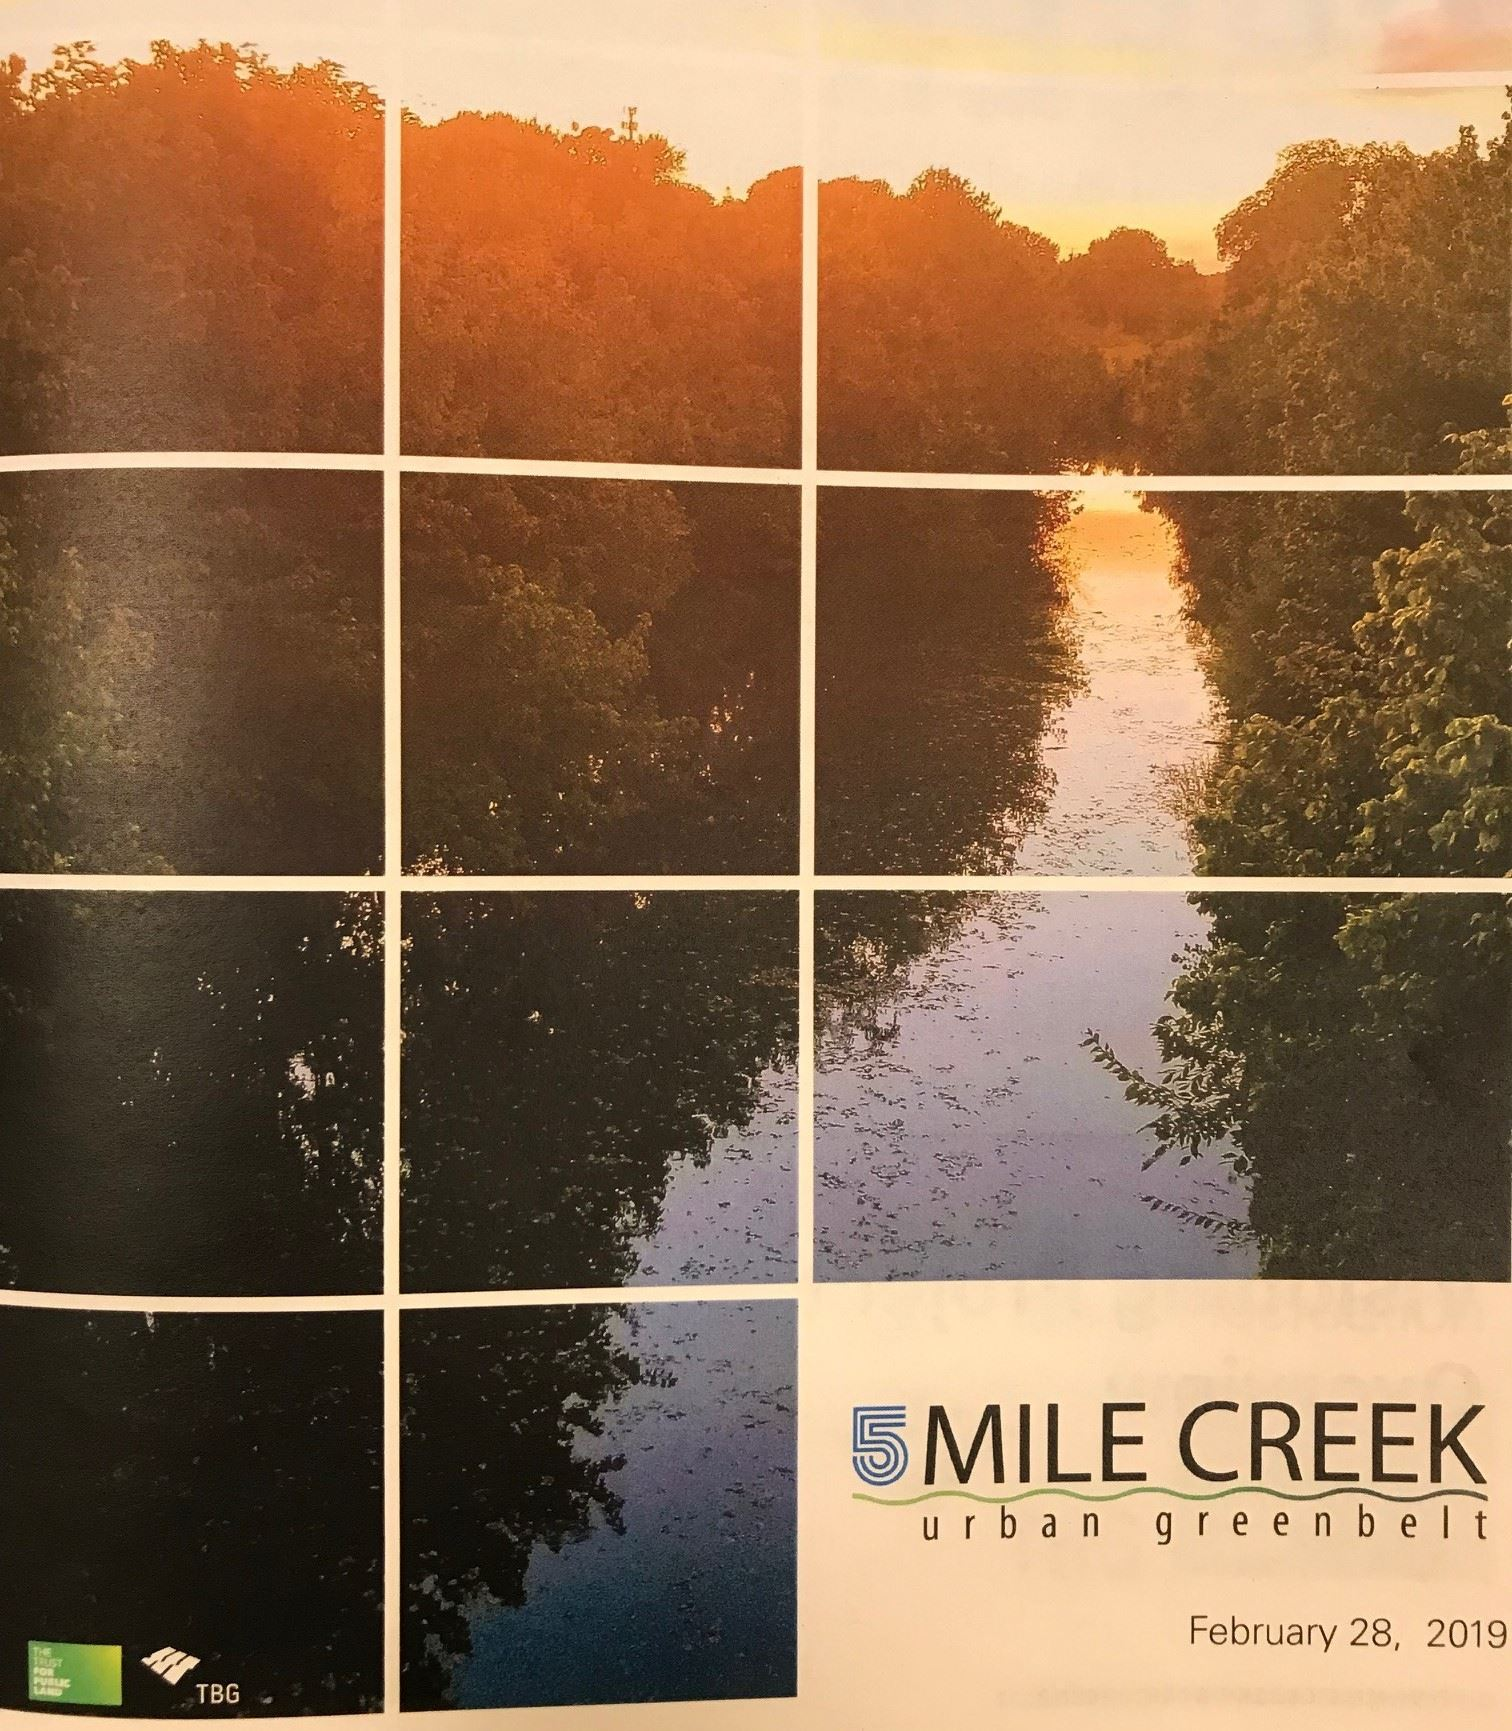 5 Mile Creek